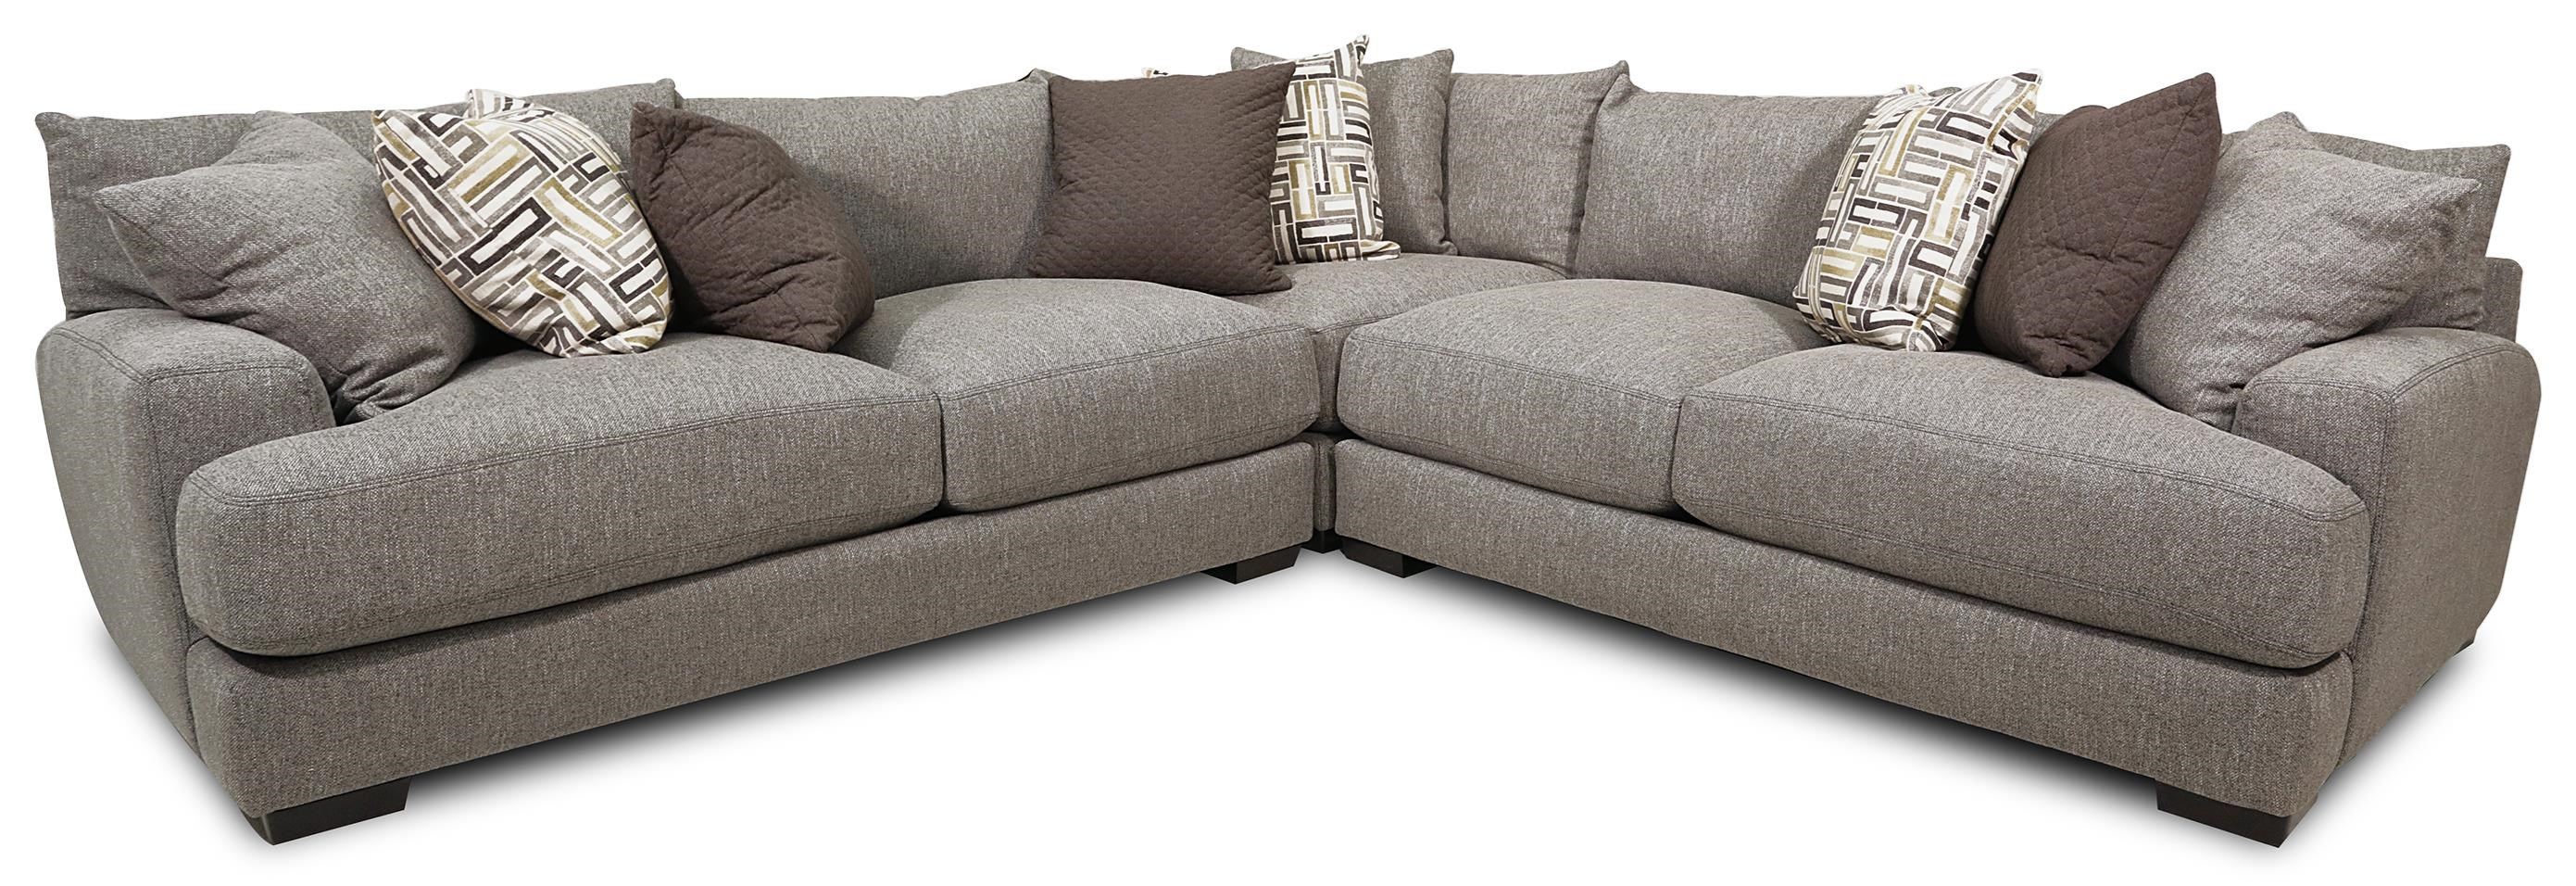 3-Piece Stationary Sectional